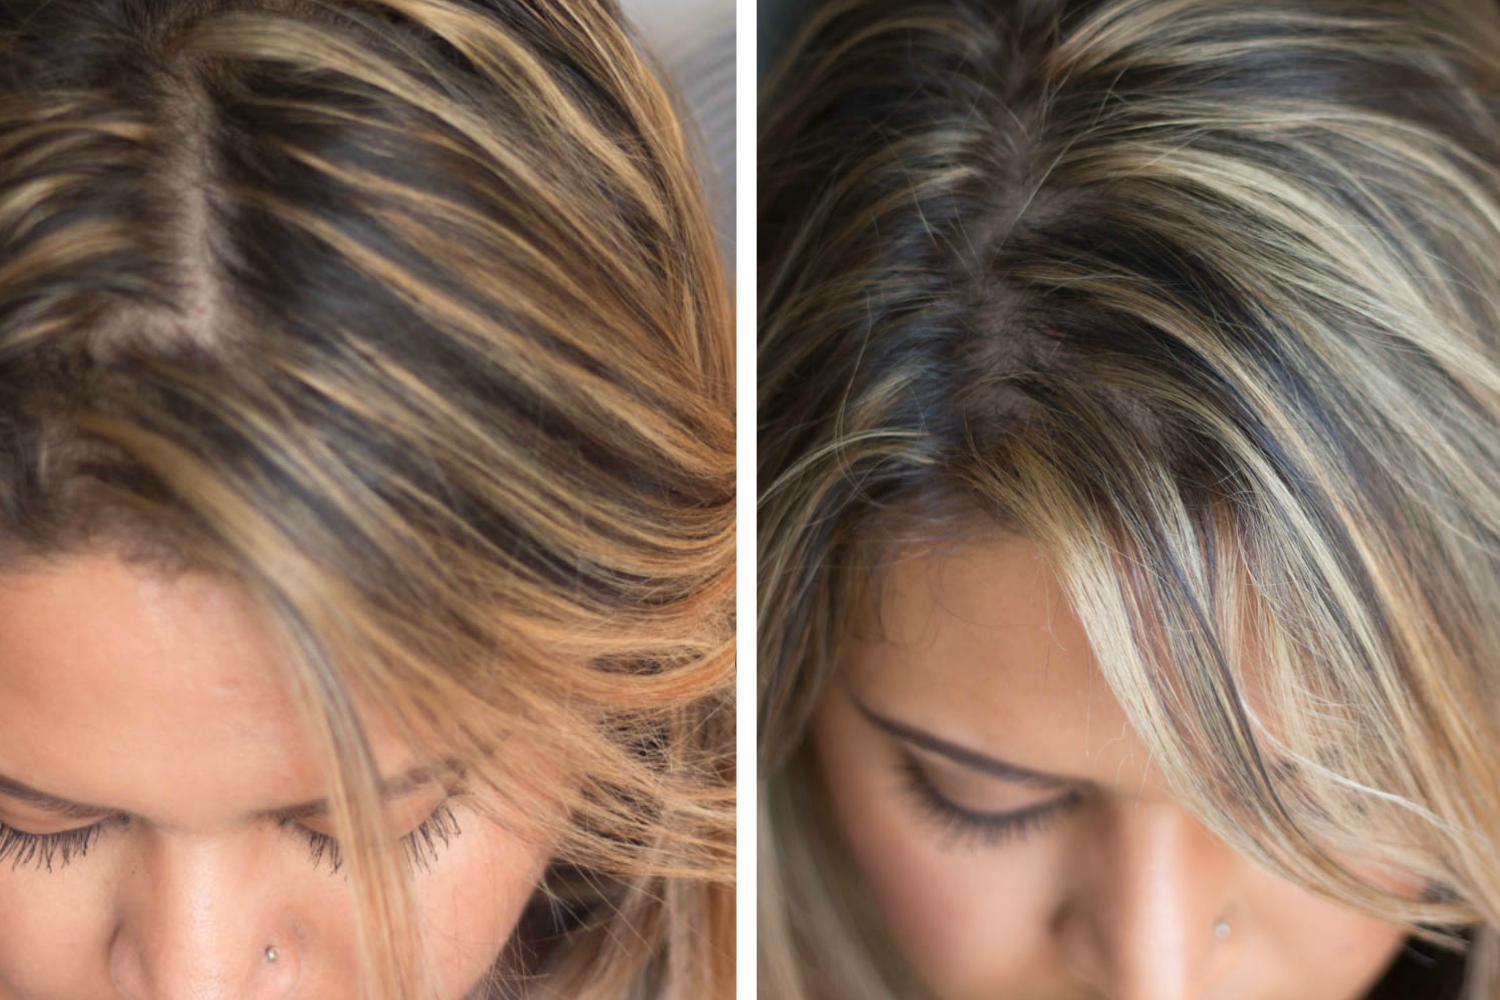 How to Tone Brassy Hair at Home - Wella T14 and Wella T18